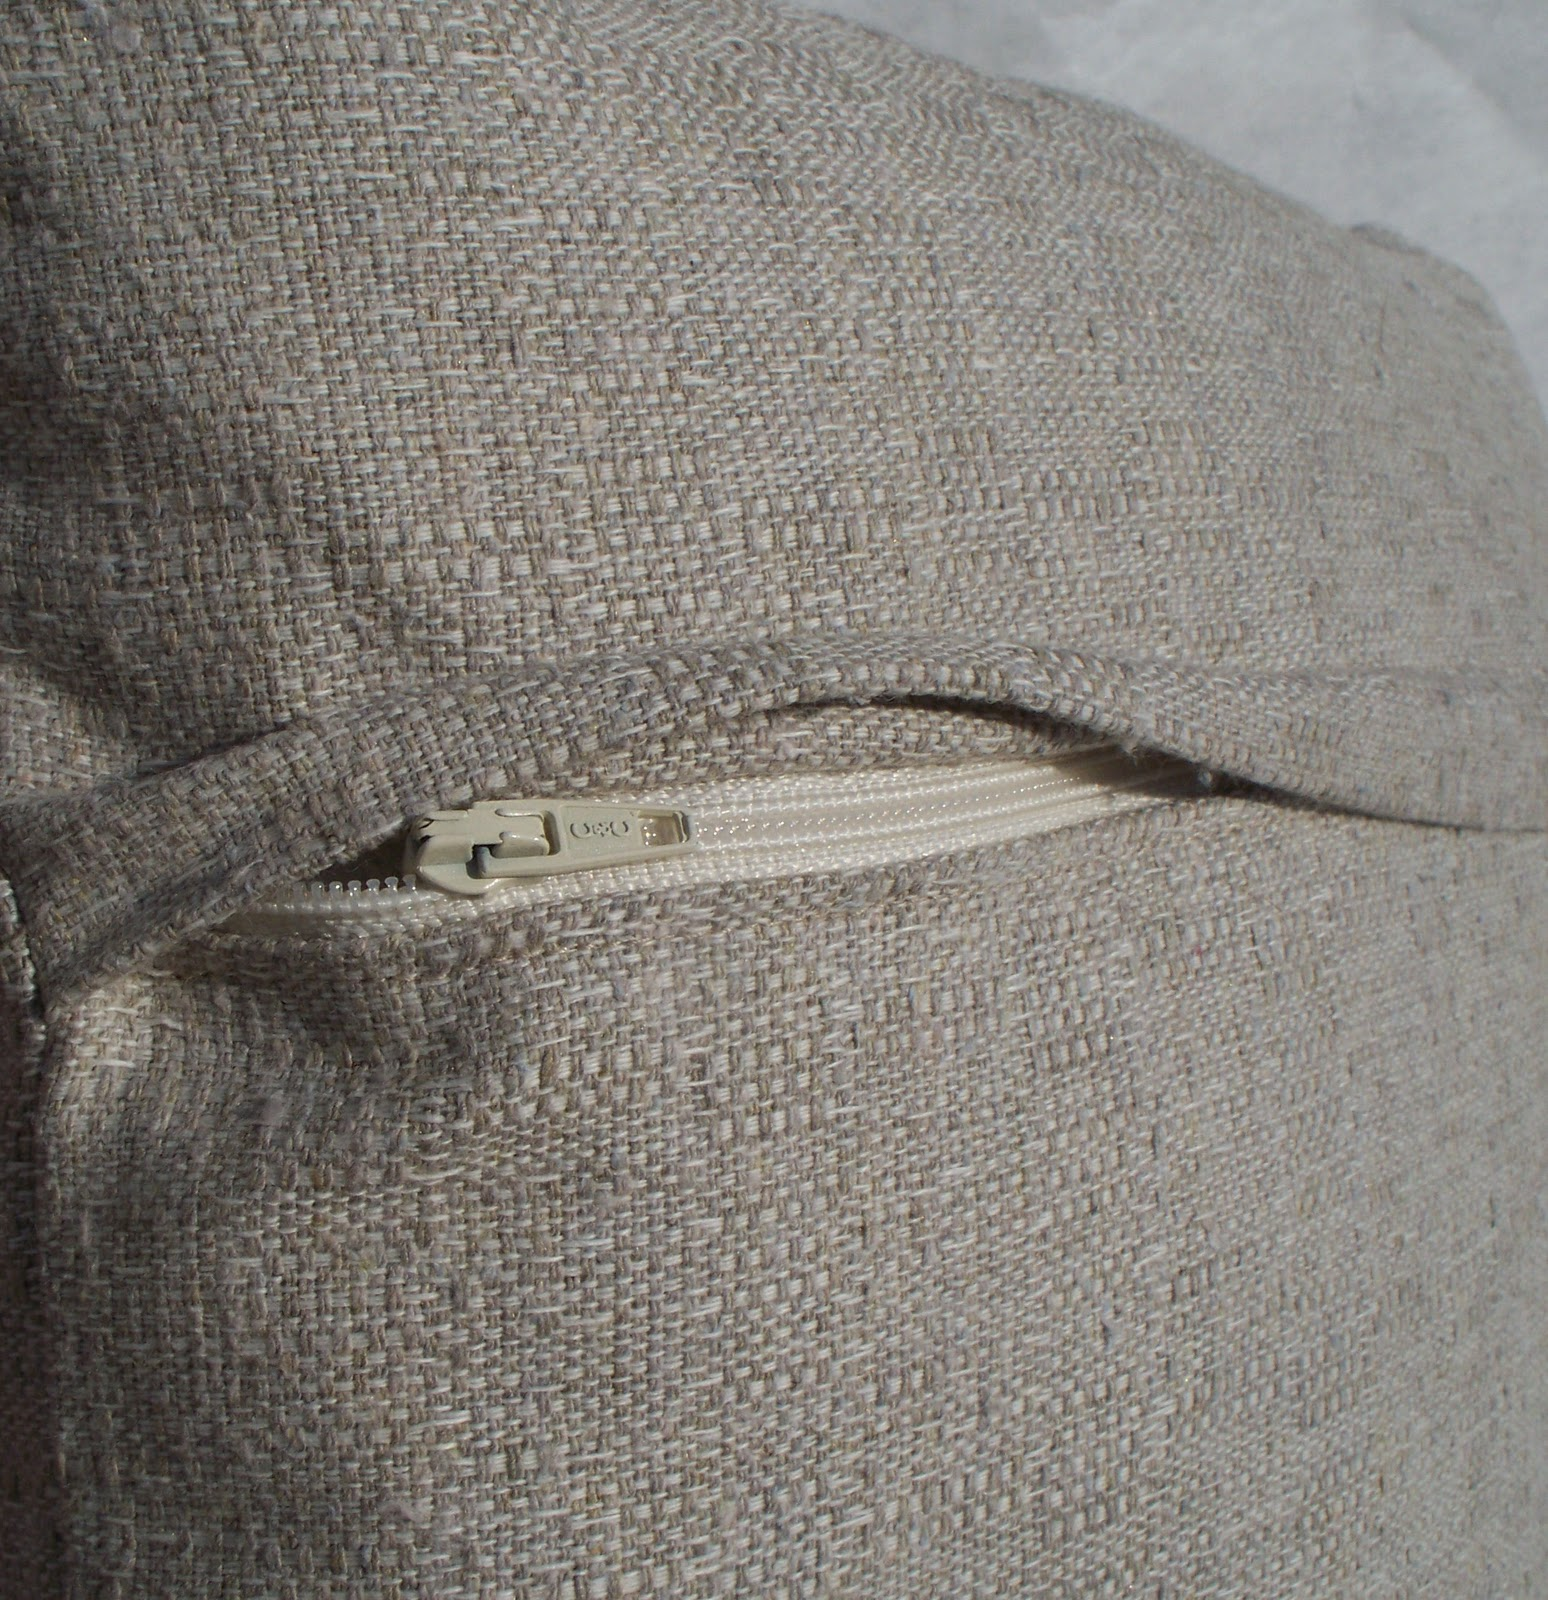 How To Make Throw Pillow With Zipper : Krista Sew Inspired: Pillow Cover with Hidden Zipper - Tutorial